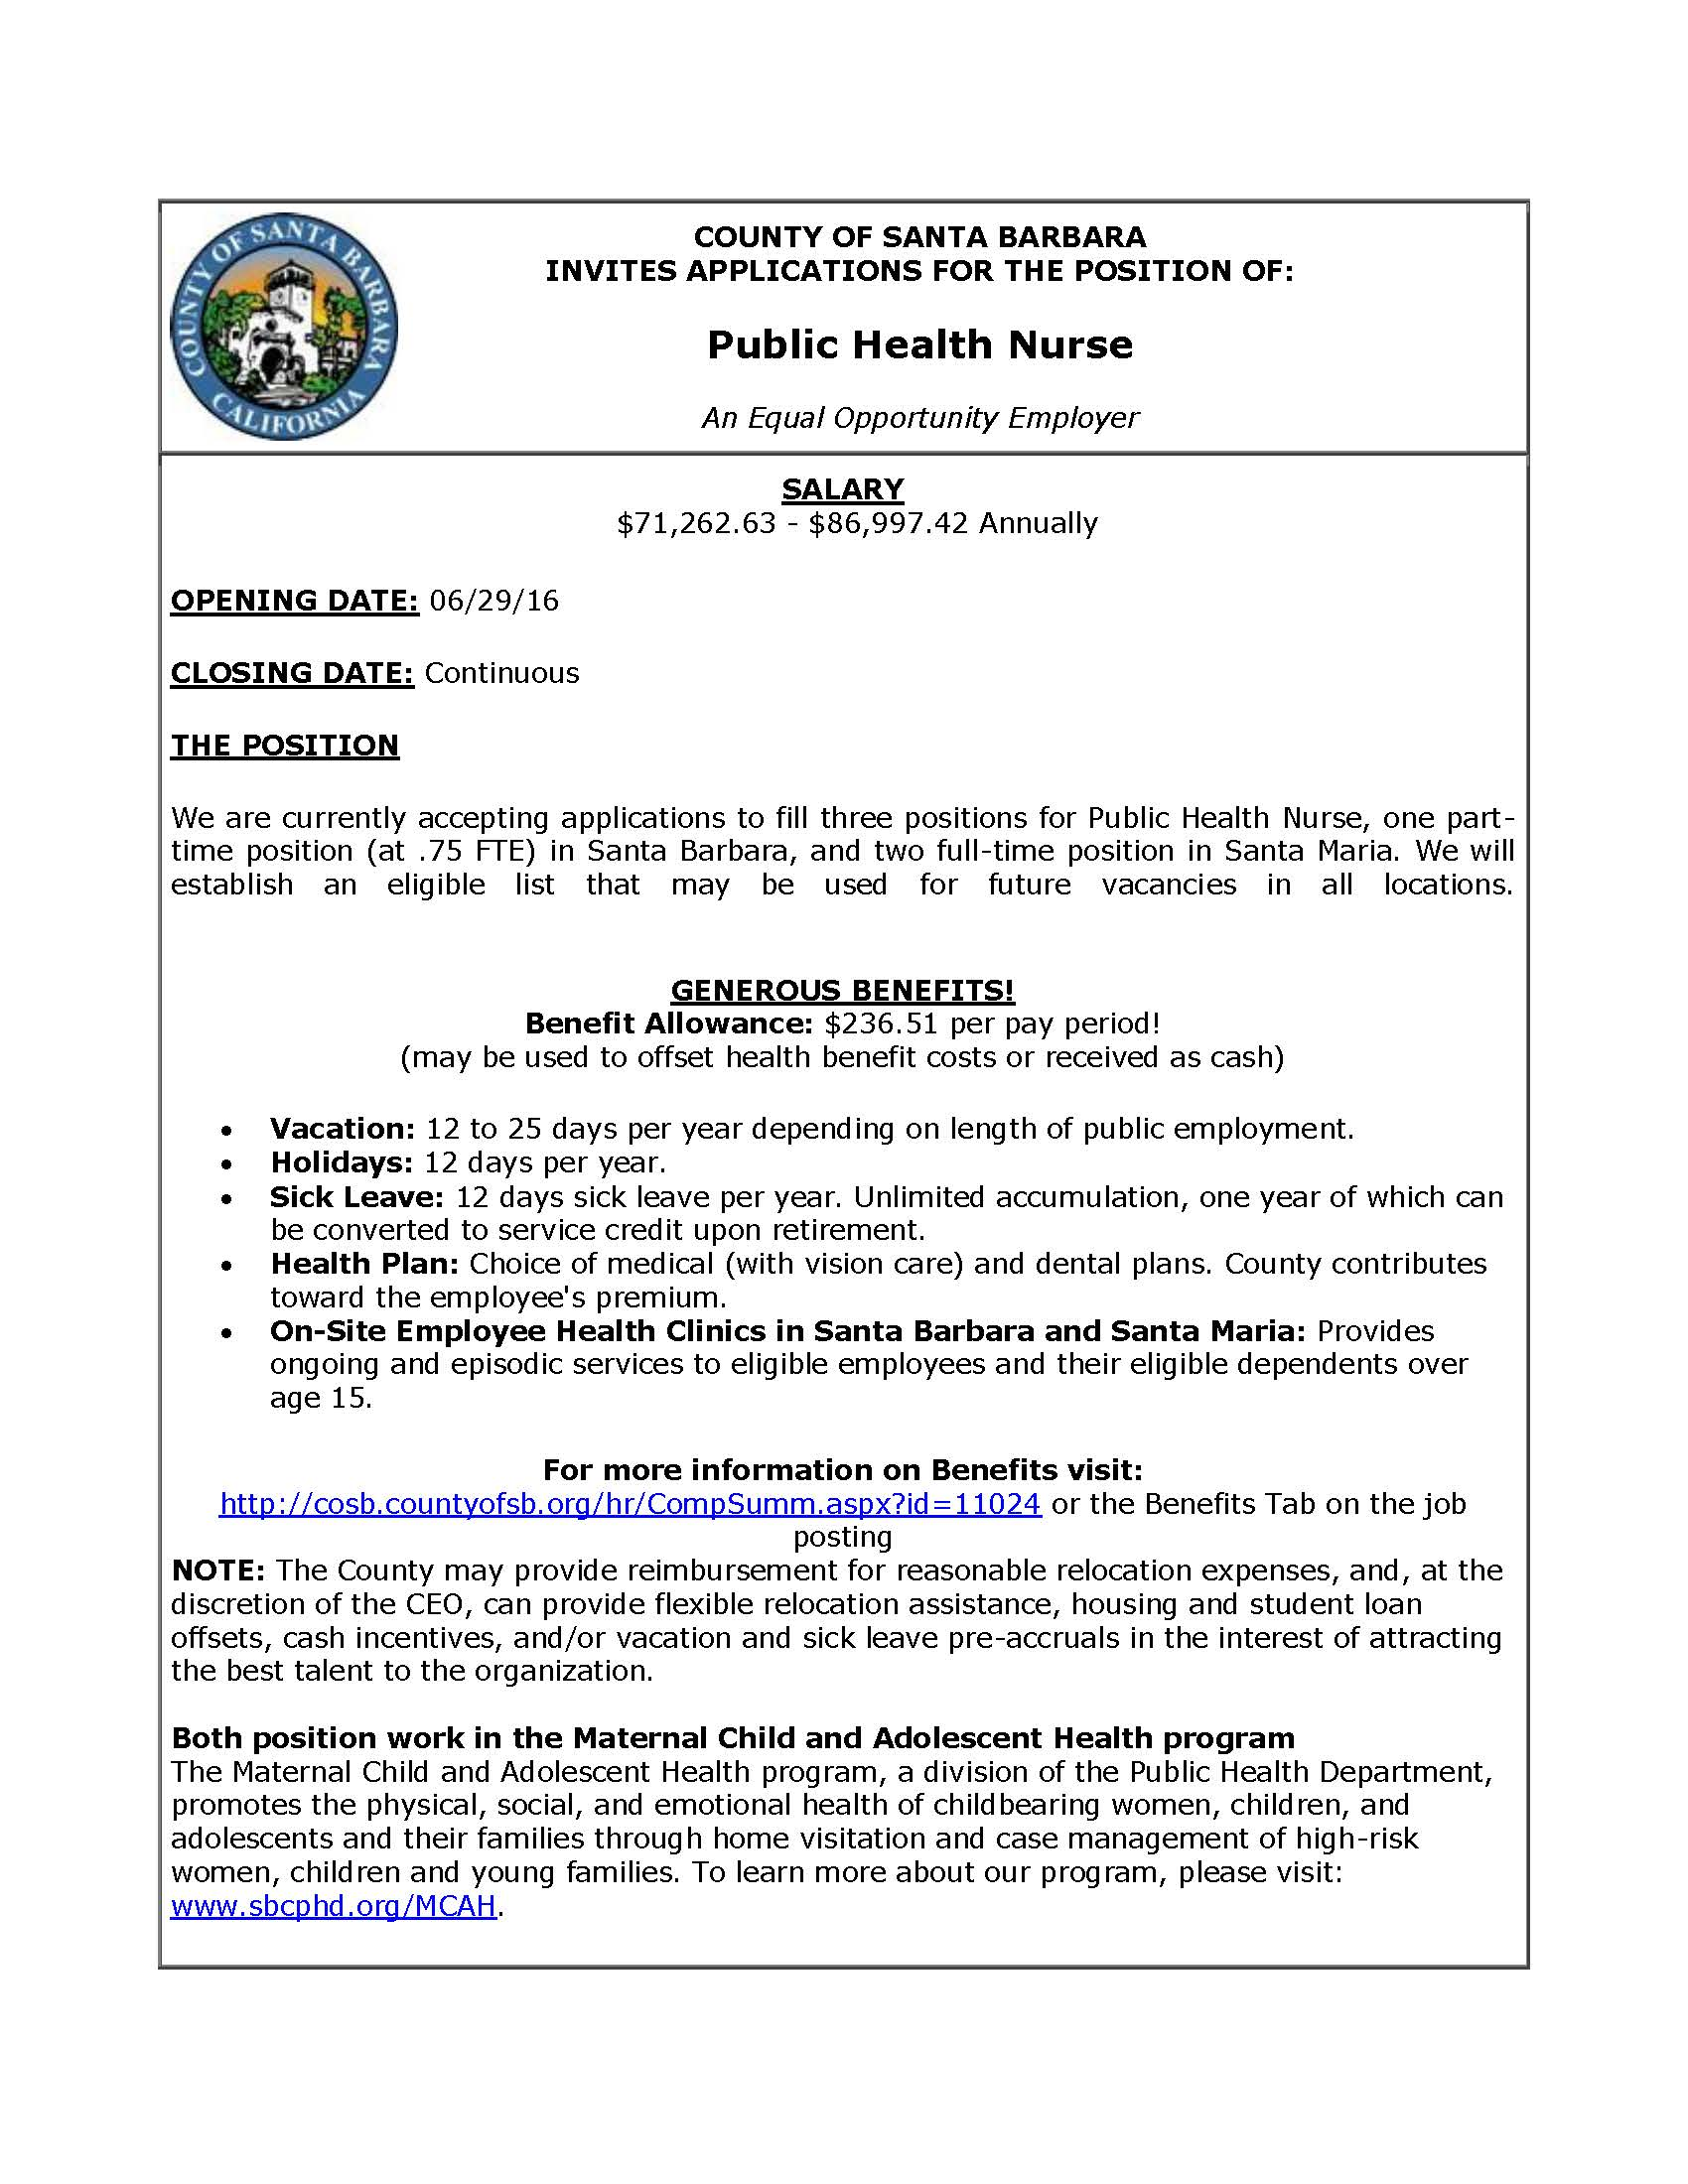 County of Santa Barbara Invites Applications for the Position of: Public Health Nurse. An equal opportunity employer